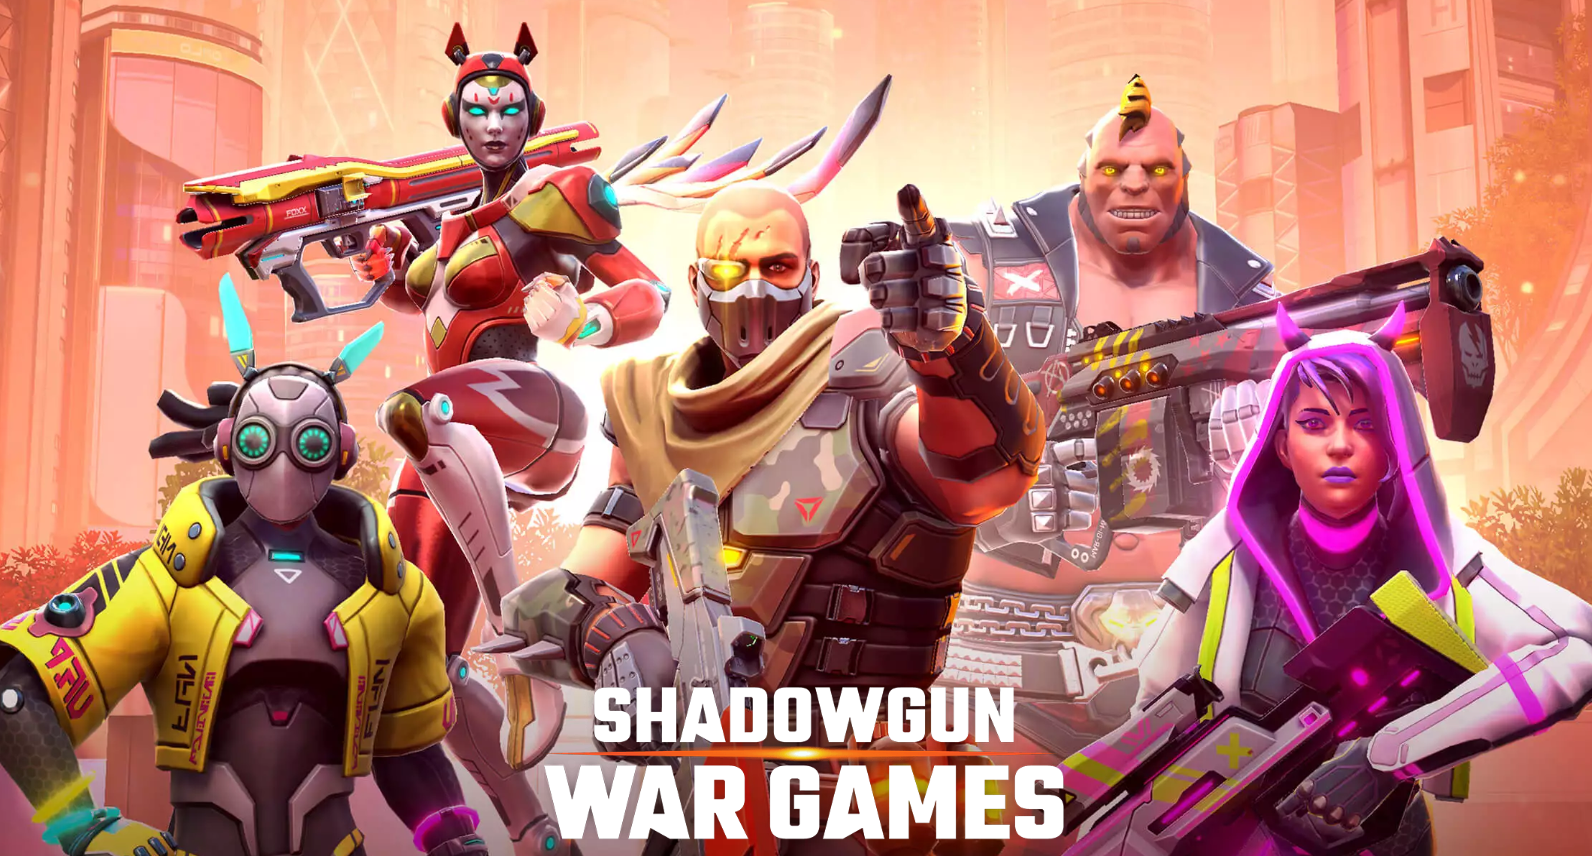 Shadowgun War Games: First Impressions - The Mobile Overwatch? 15